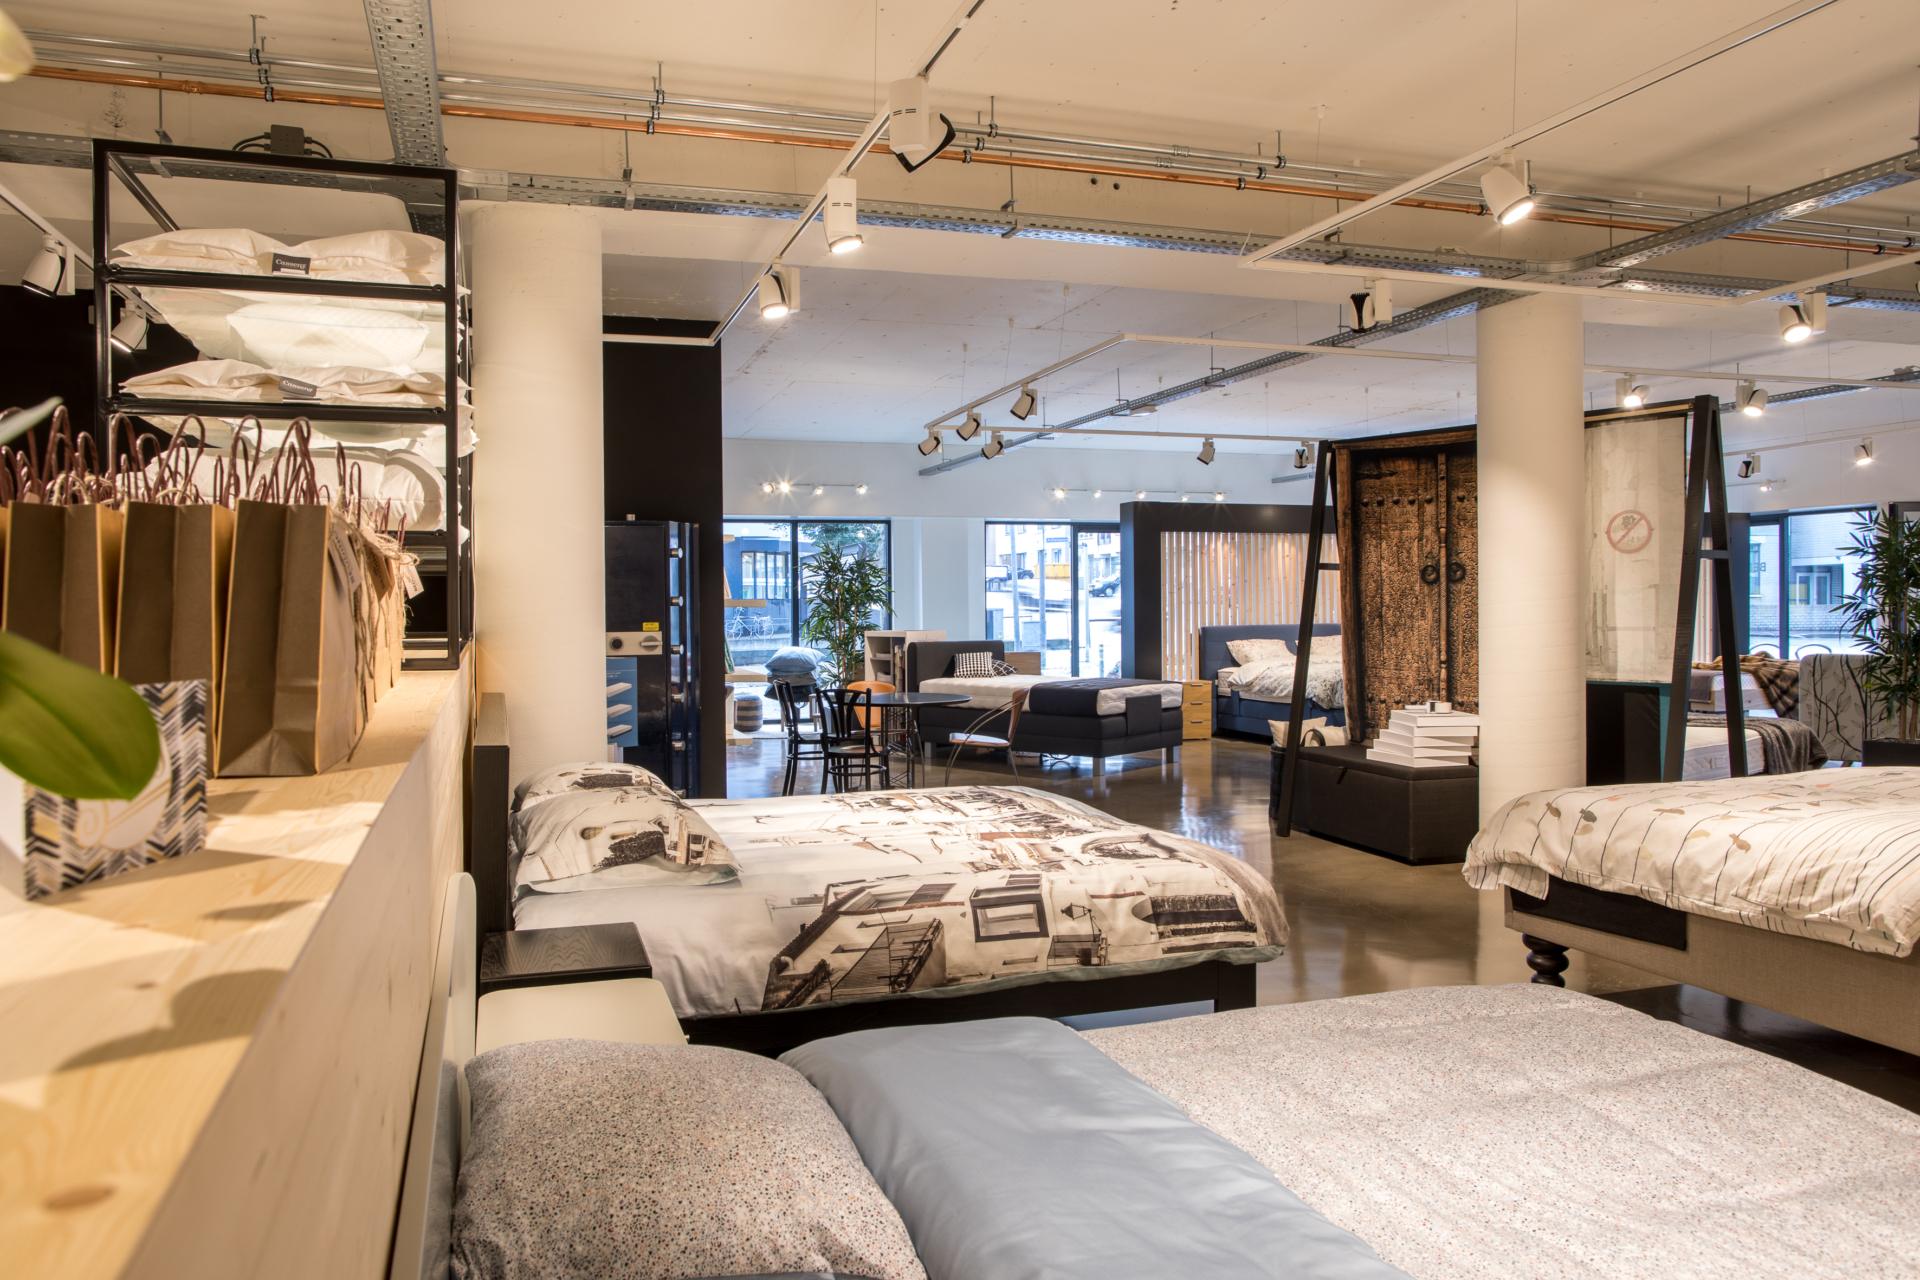 Showroom Bedding Slaapcomfort Ede